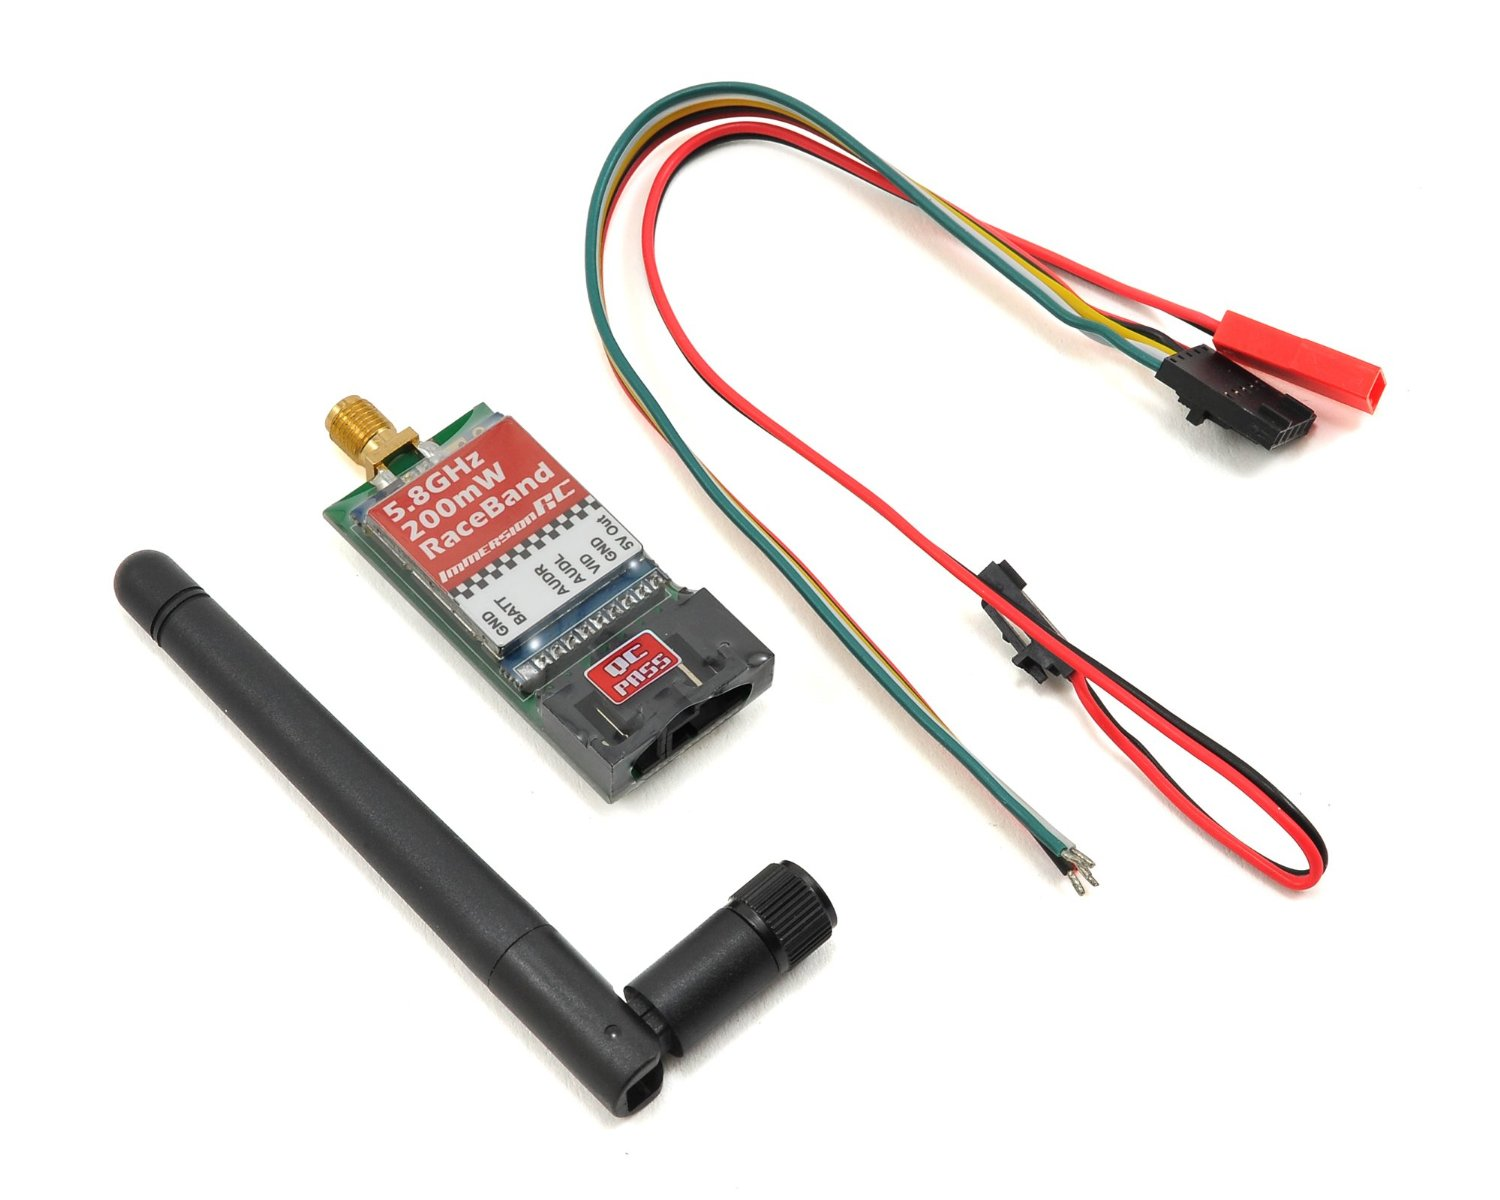 ImmersionRC Race Band 200mW 5.8GHz A/V Transmitter - SNHE